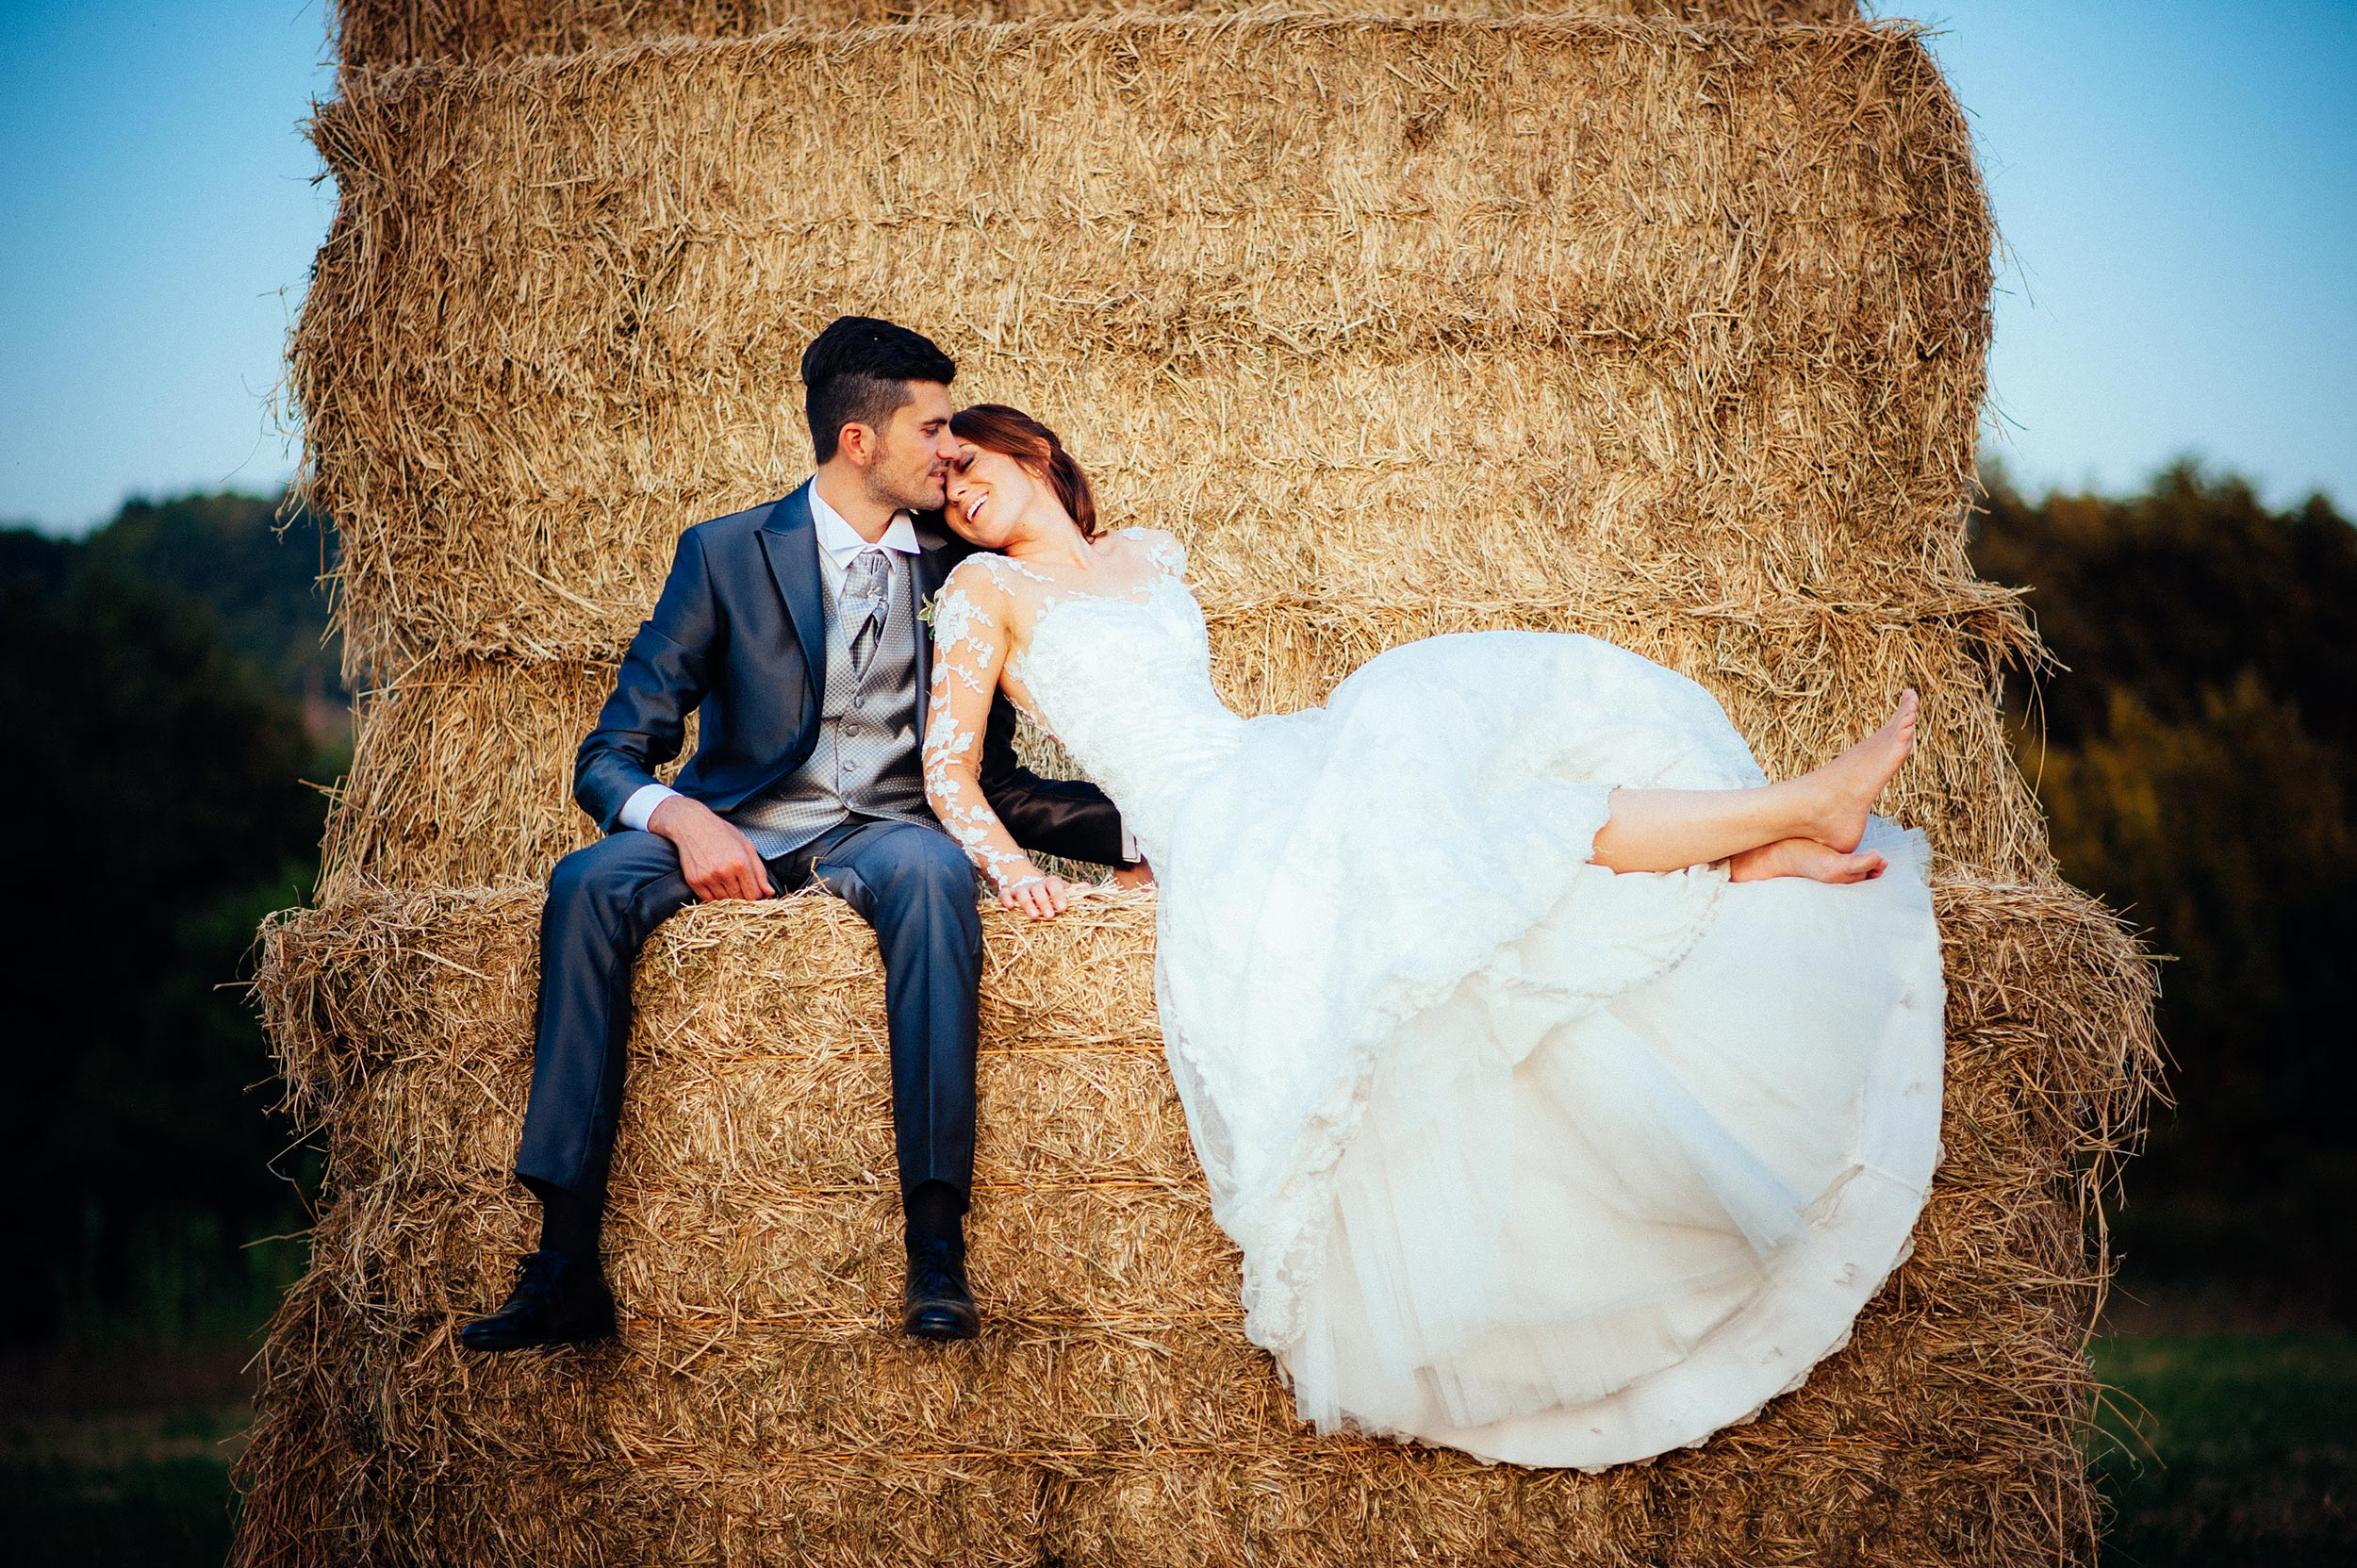 marche-italy-hay-bales-color-wedding-photography-looks-like-film.jpg